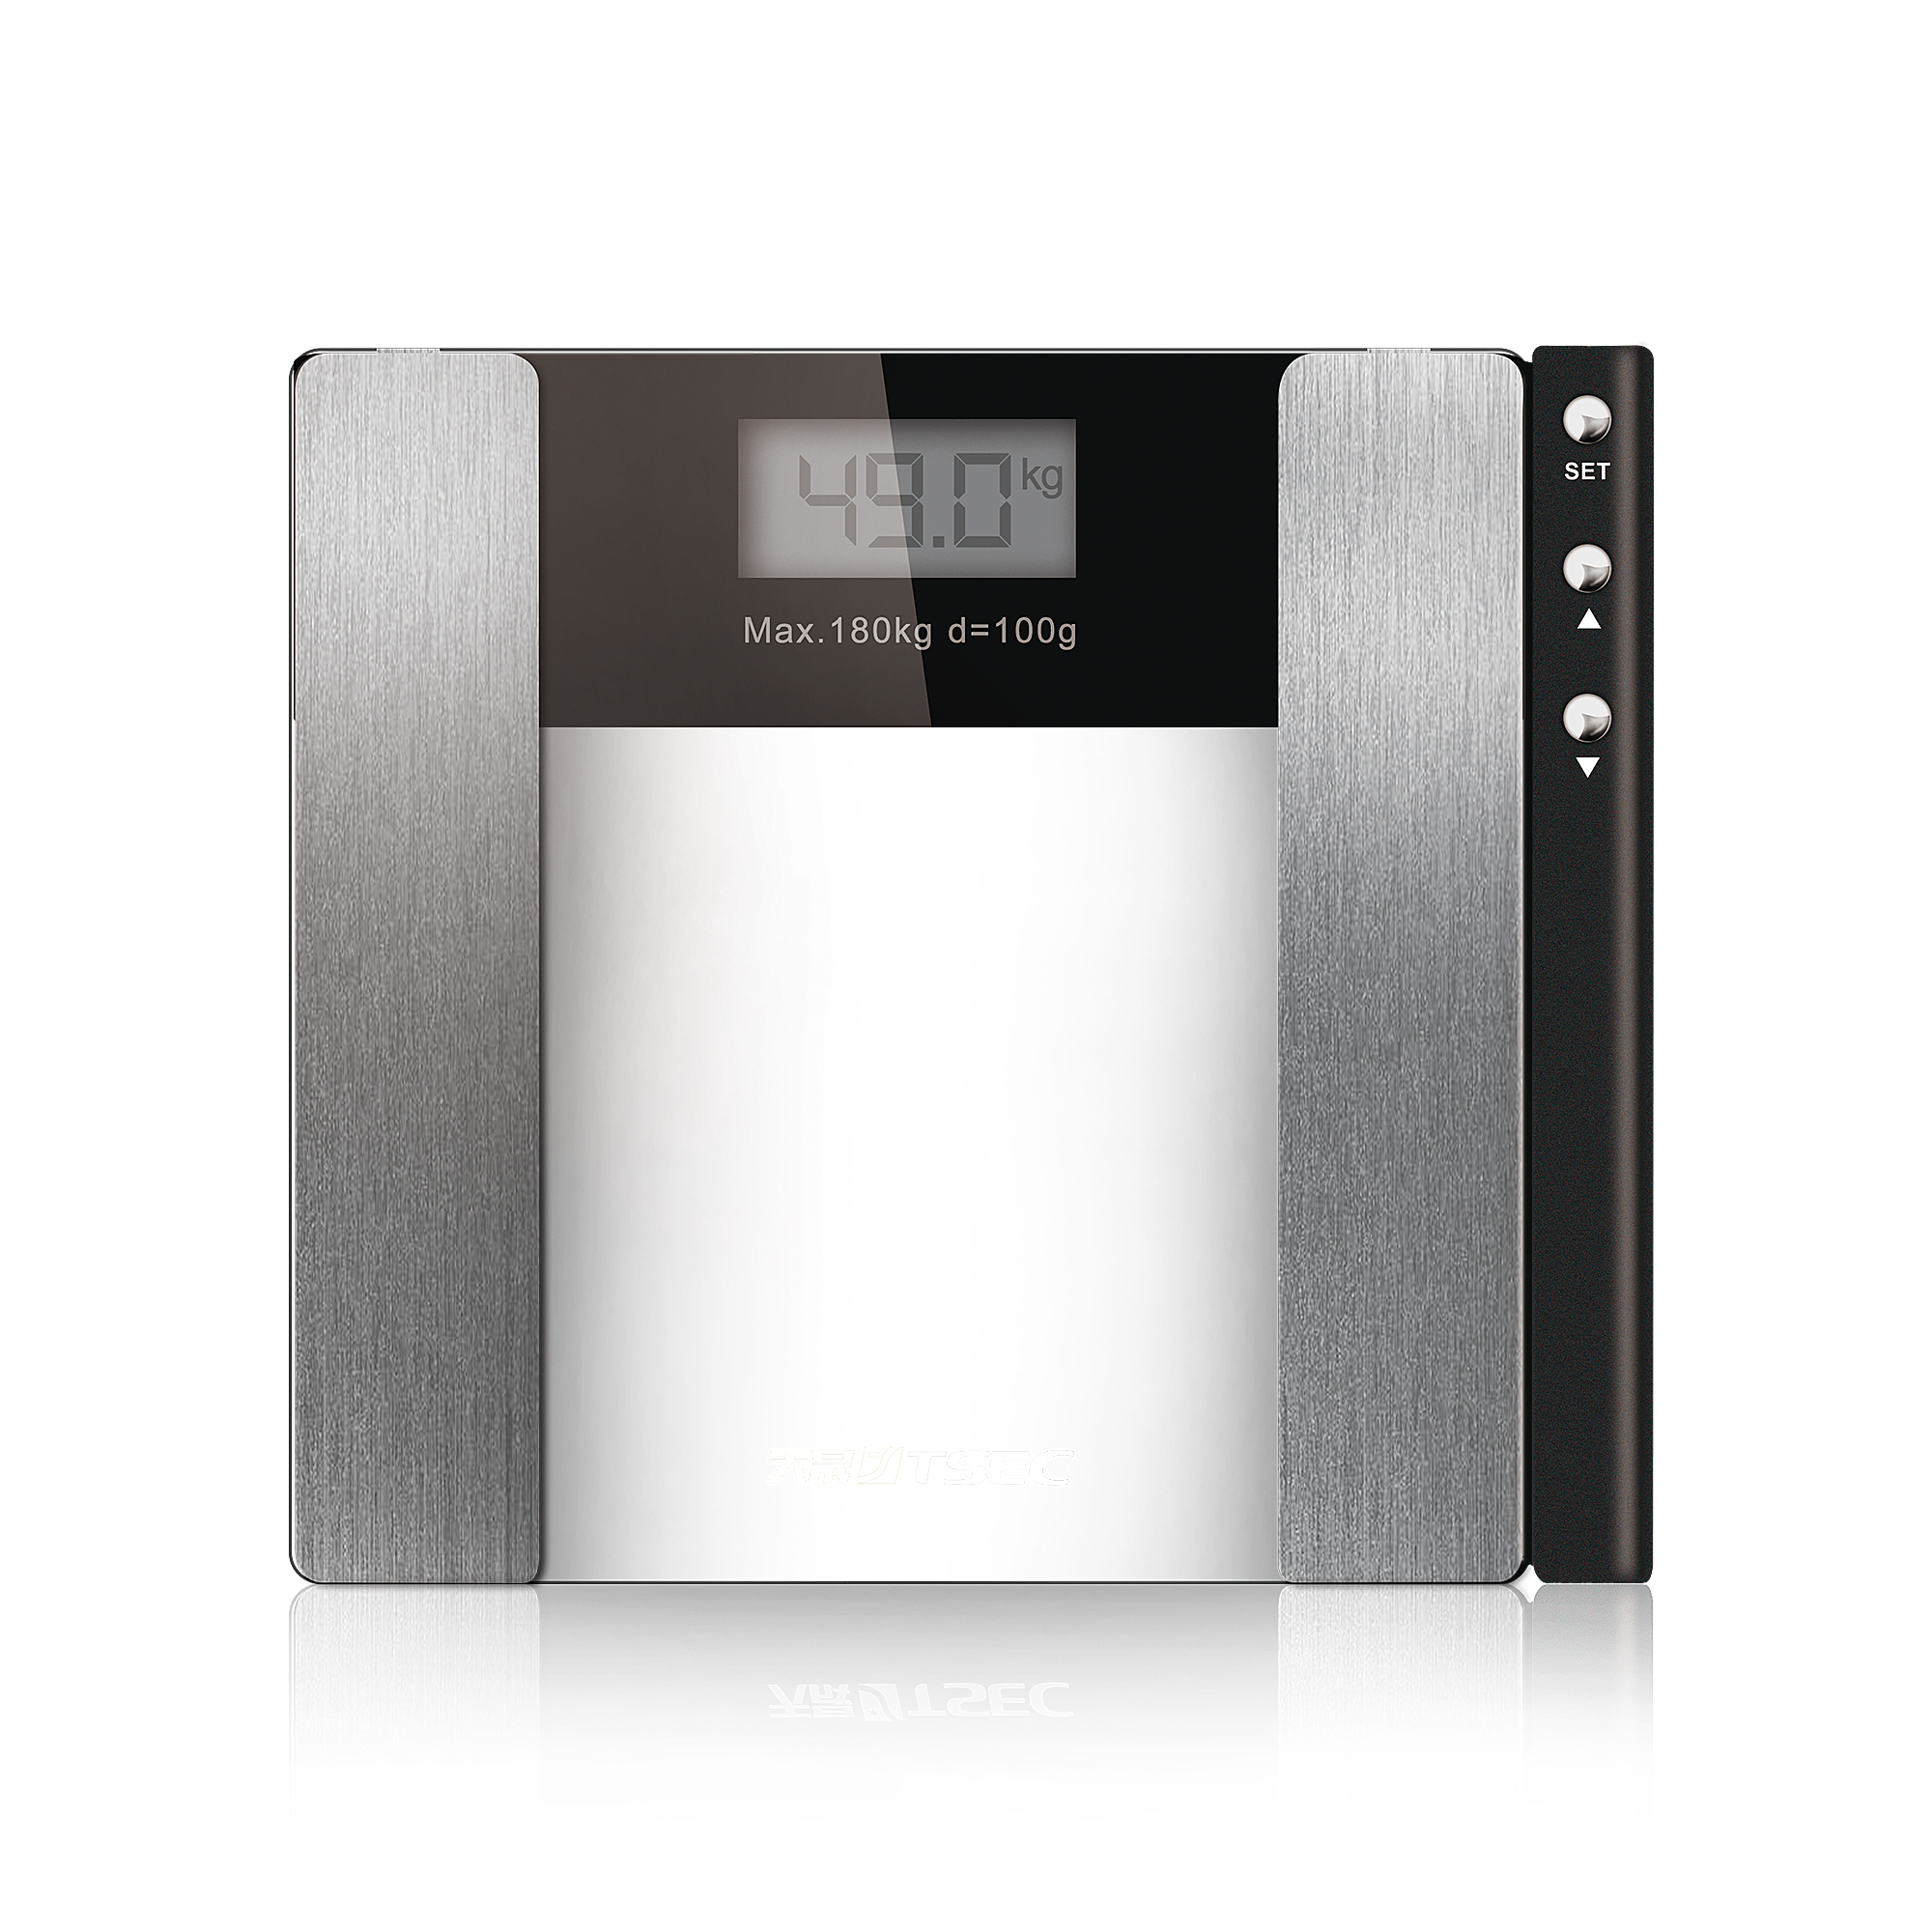 Direct Manufacturer 396lb Bluetooth Body Fat Scale Smart BMI Scale Digital Bathroom Wireless Weight Scale with IOS and Android